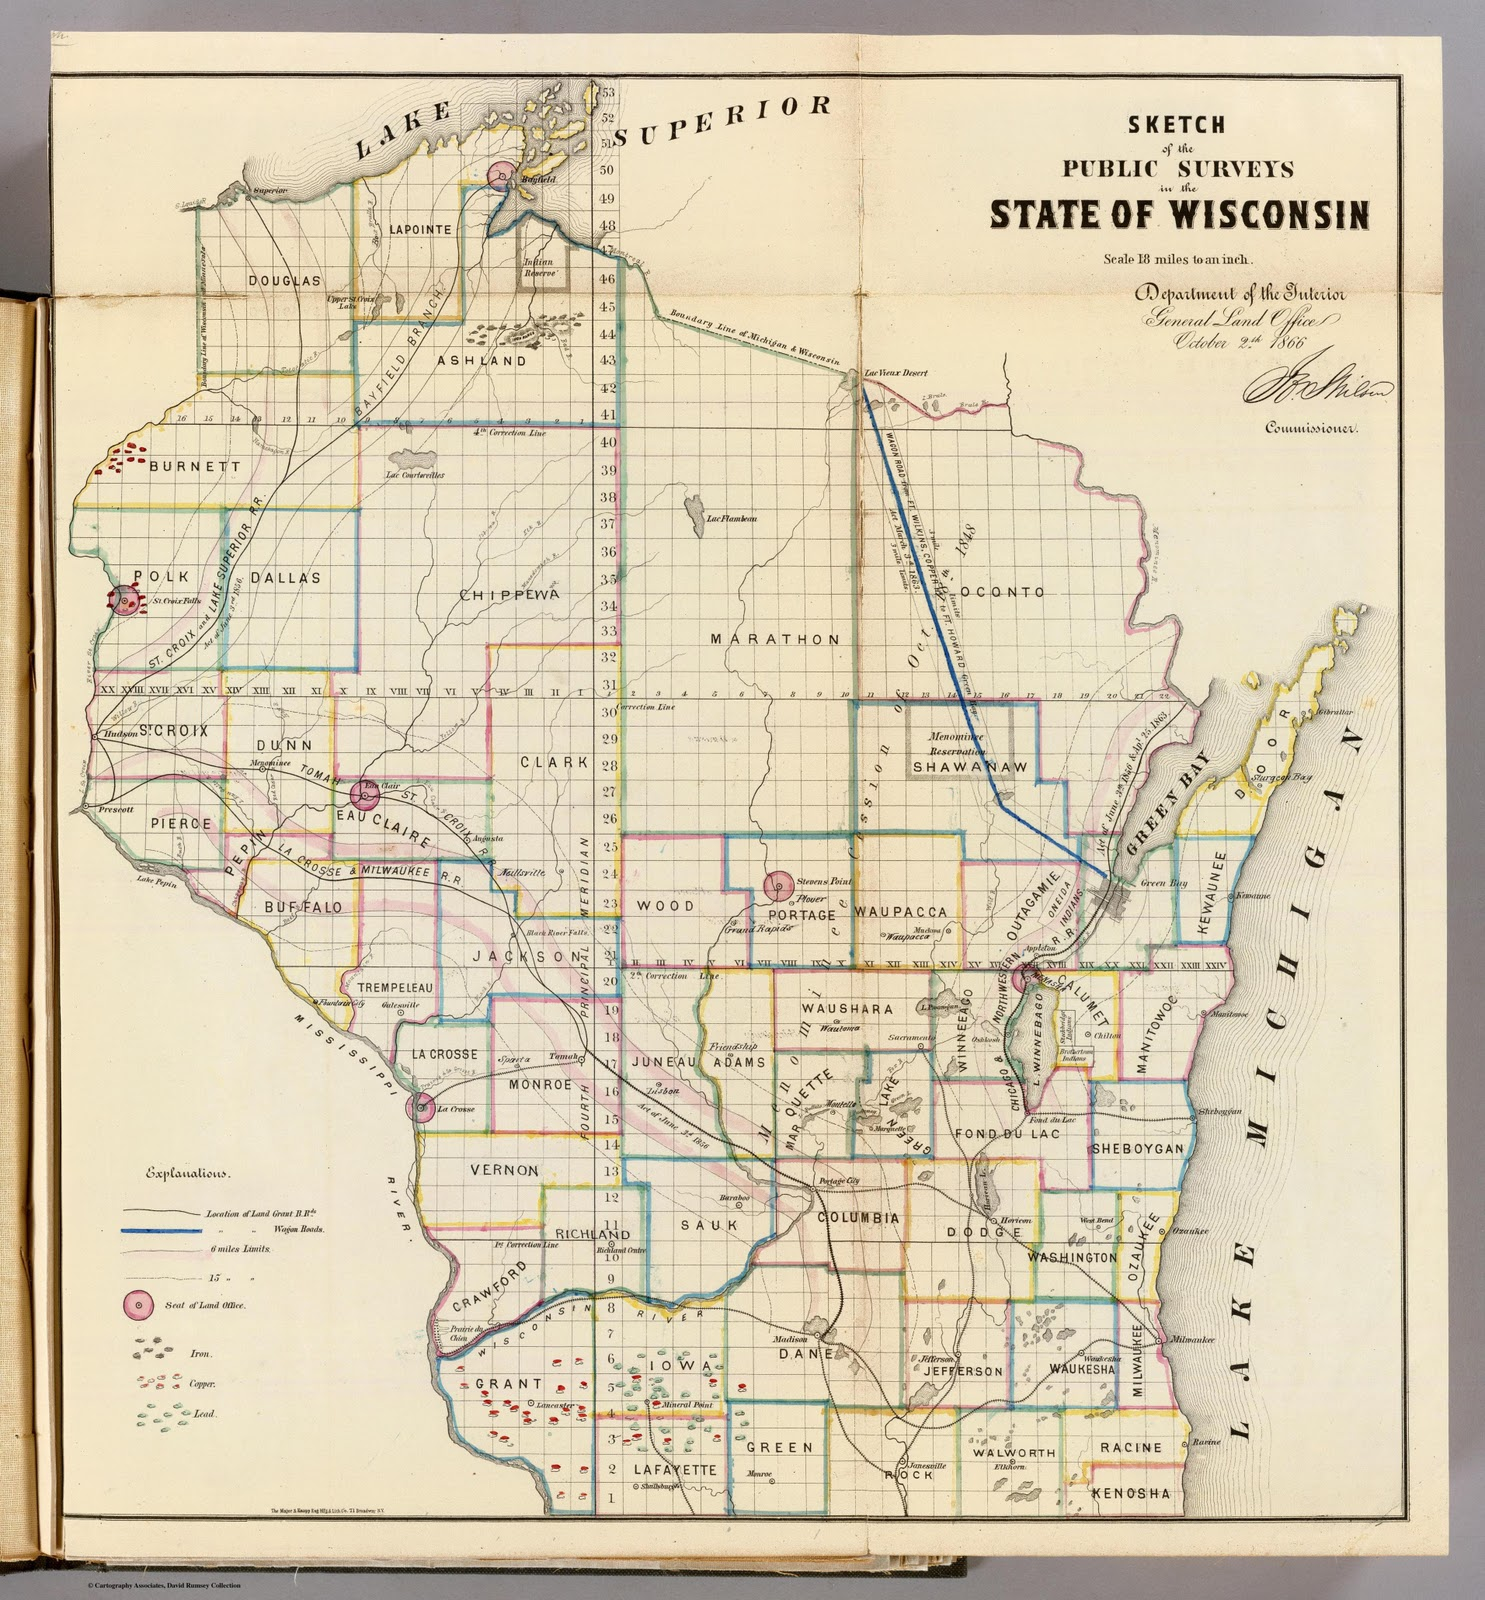 1886 general land office map showing grants for railroads and wagon roads http www davidrumsey com